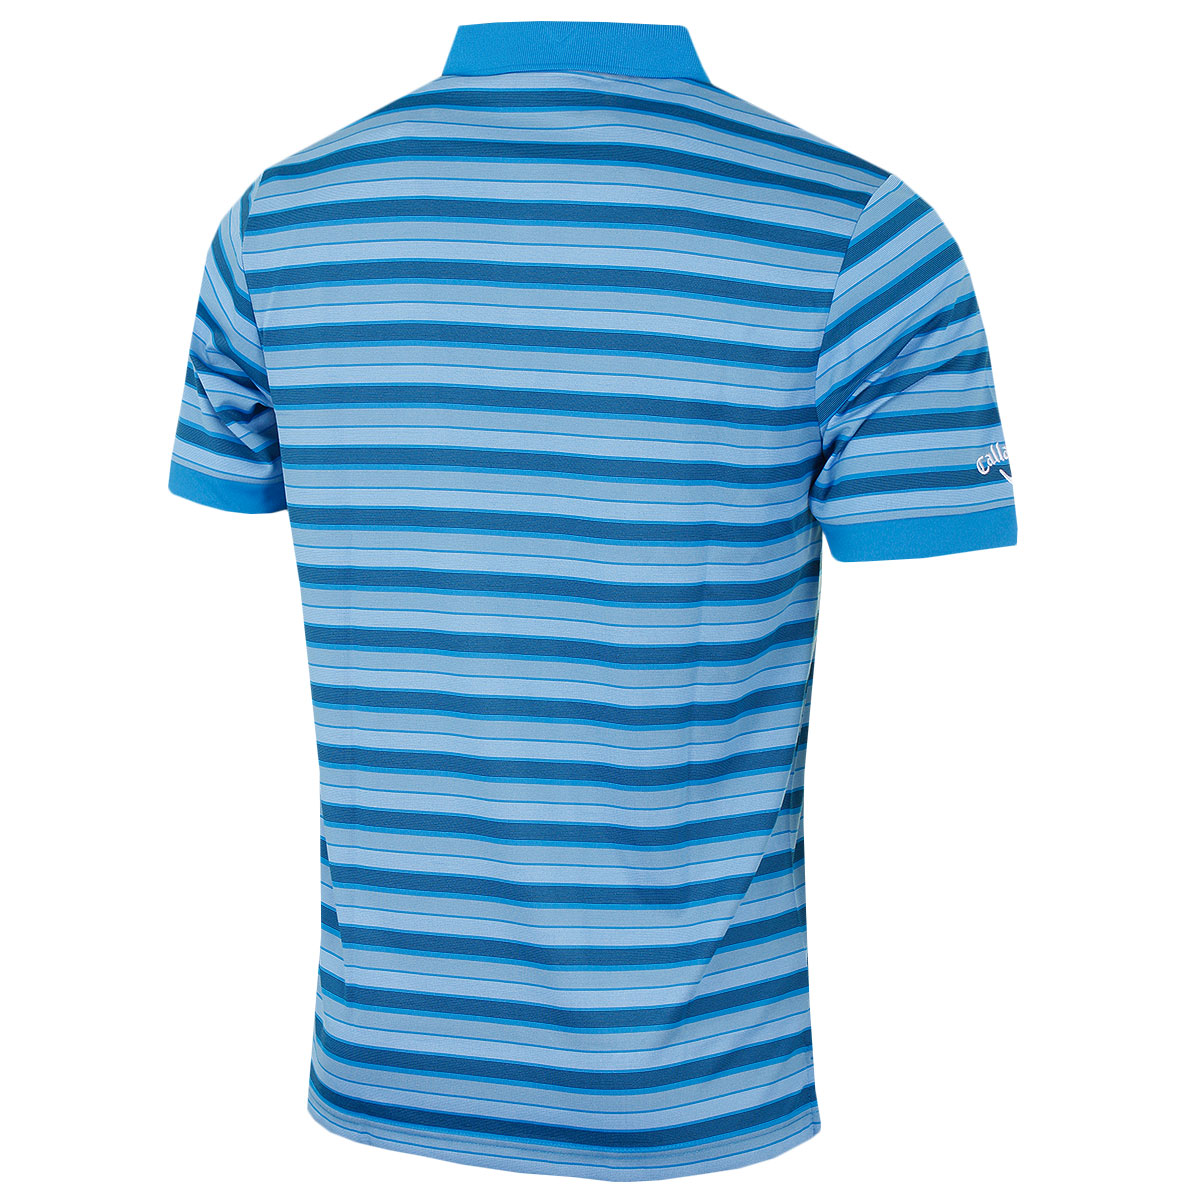 Callaway-Golf-Mens-Fine-Line-Opti-Dri-Striped-Polo-Shirt-CGKS7045-49-OFF-RRP thumbnail 5